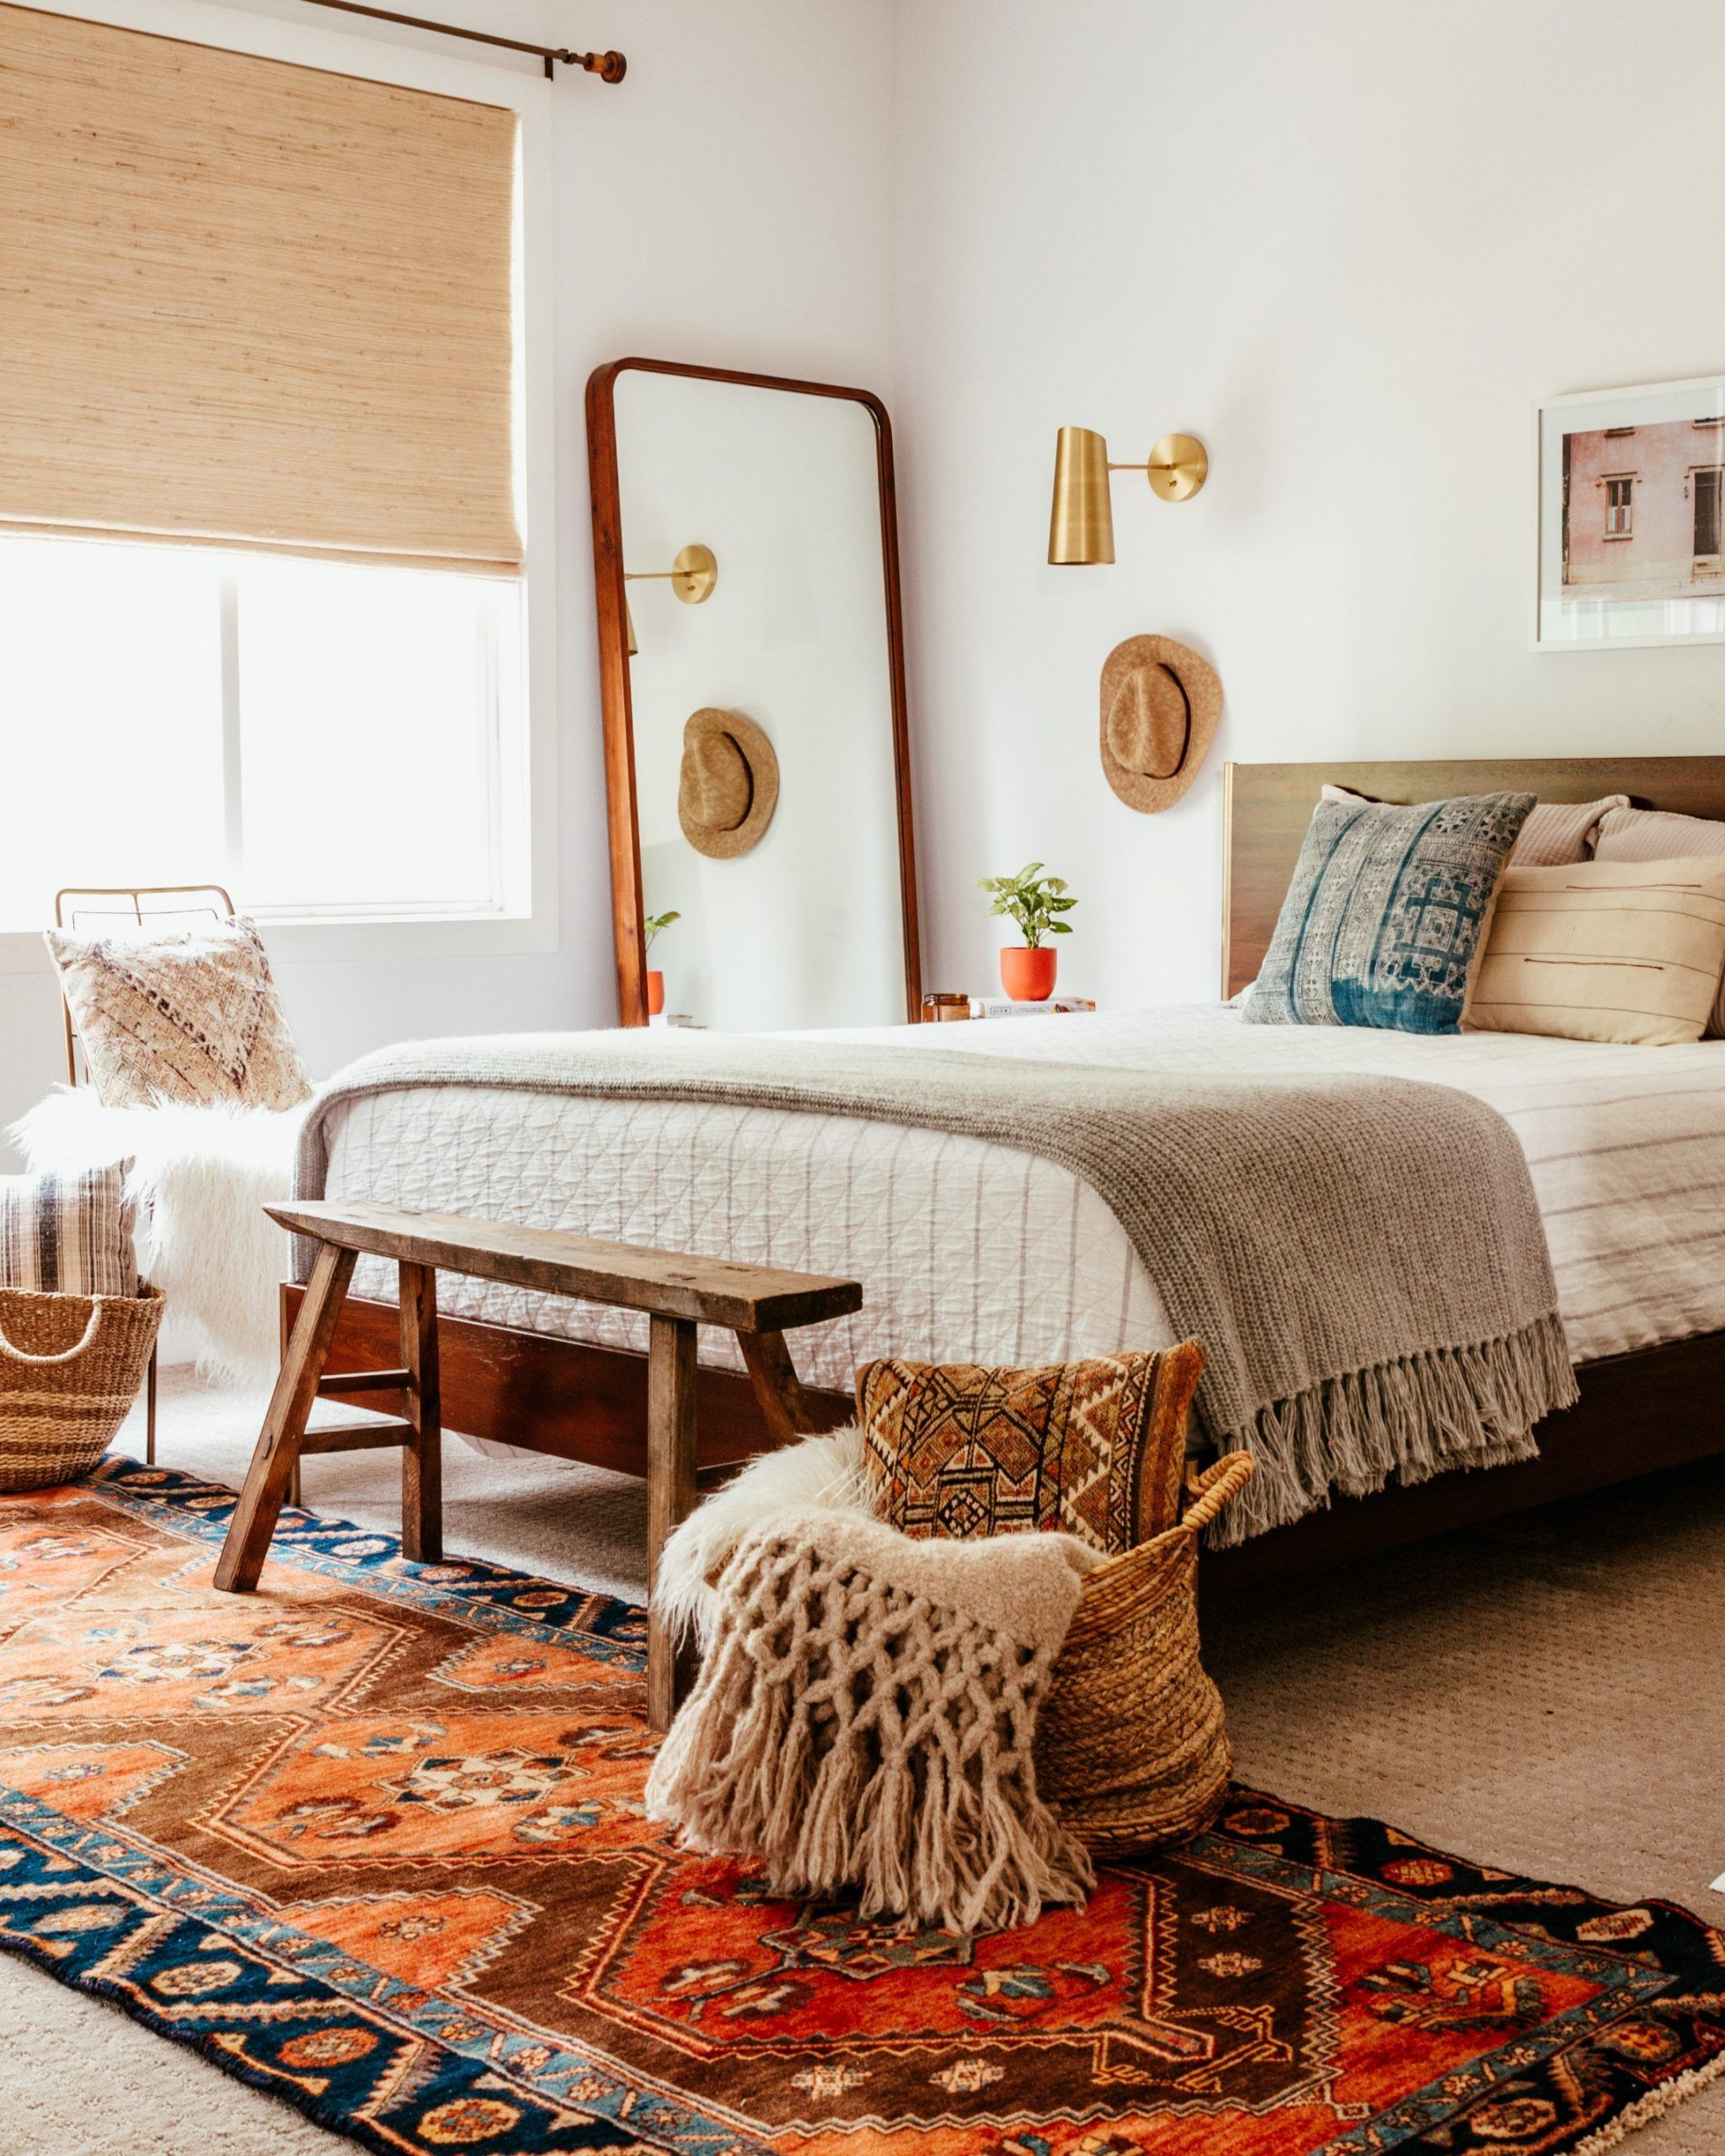 """My Favorite Sherwin-Williams Paint Colors   Anita Yokota   One of the most asked questions I get from my readers is, """"What paint color is that?"""" So on the blog I thought I would round up my favorite Sherwin-Williams paint colors that I used in my home and recent design projects for you! #paint #homedecor #modernhome"""